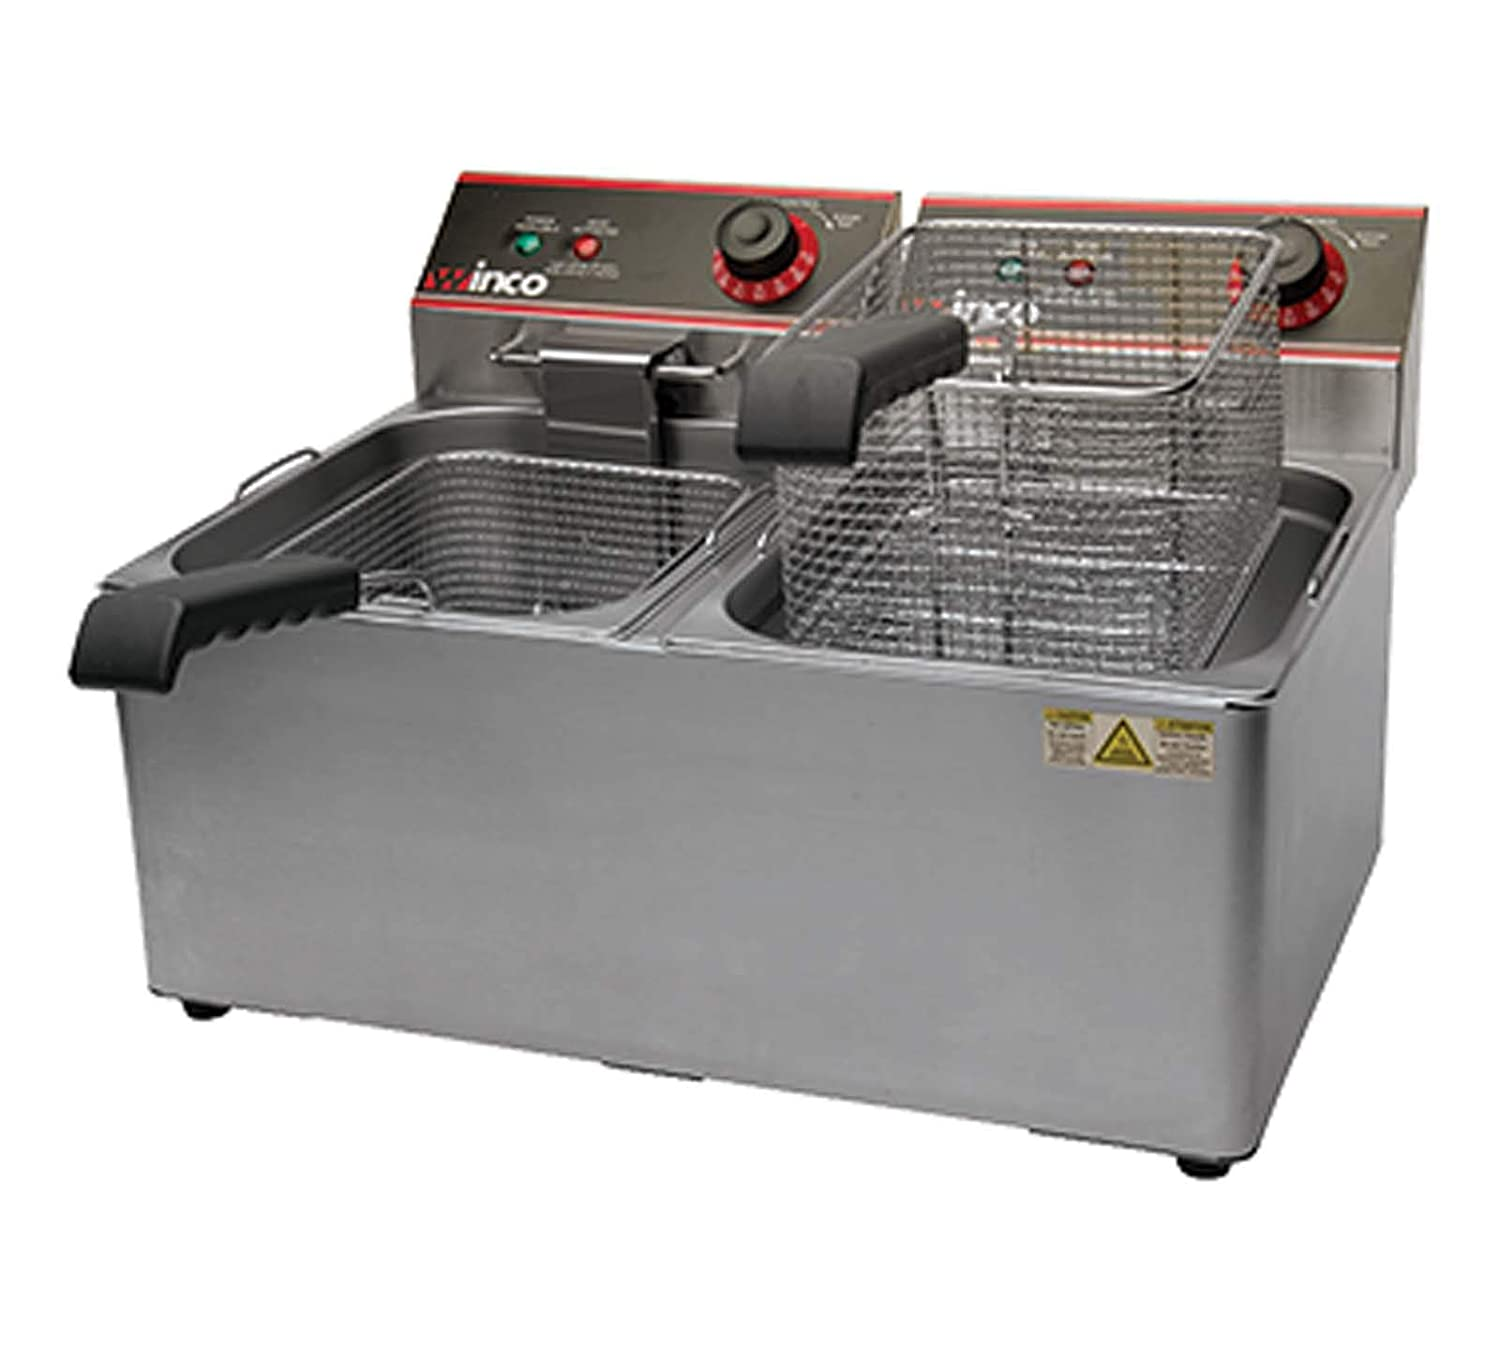 Winco EFT-32 Electric Deep Fryer, 1800W, 120V, 60Hz, Twin Well, 32 lbs. Oil Capacity, Lot of 1